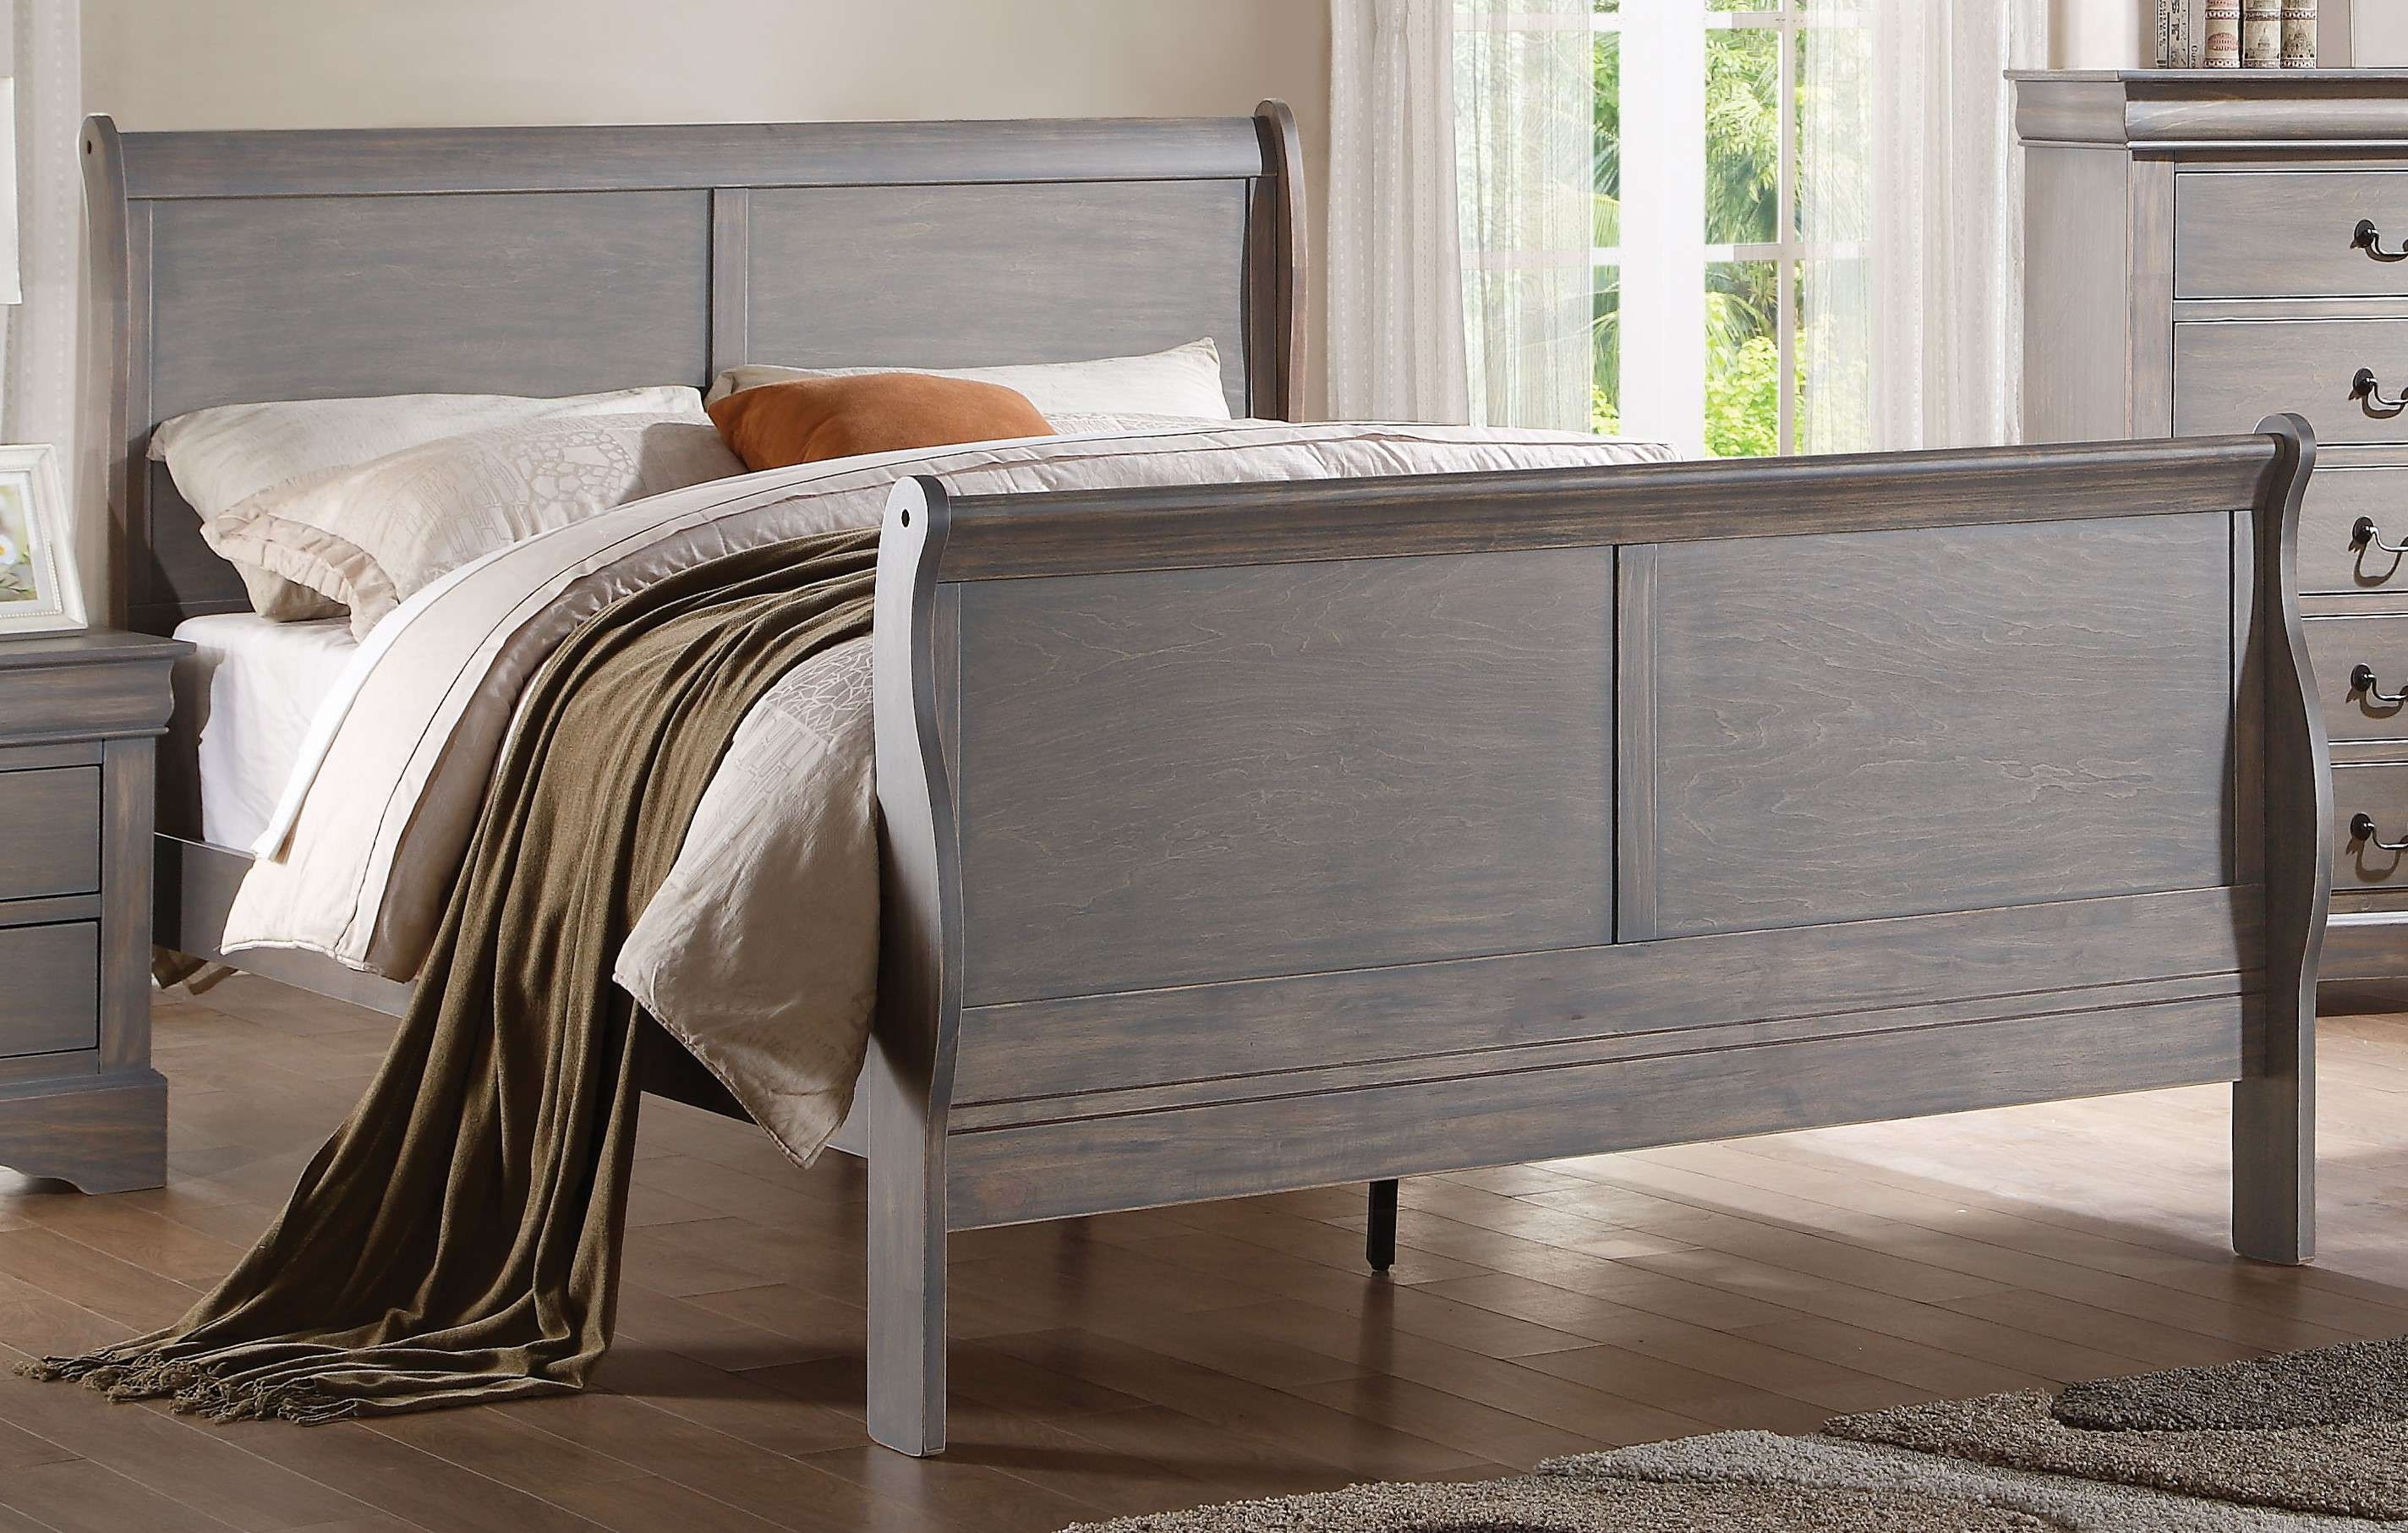 2894d5184e0d2 ACME Furniture Louis Philippe III Antique Gray Queen Sleigh Bed ...